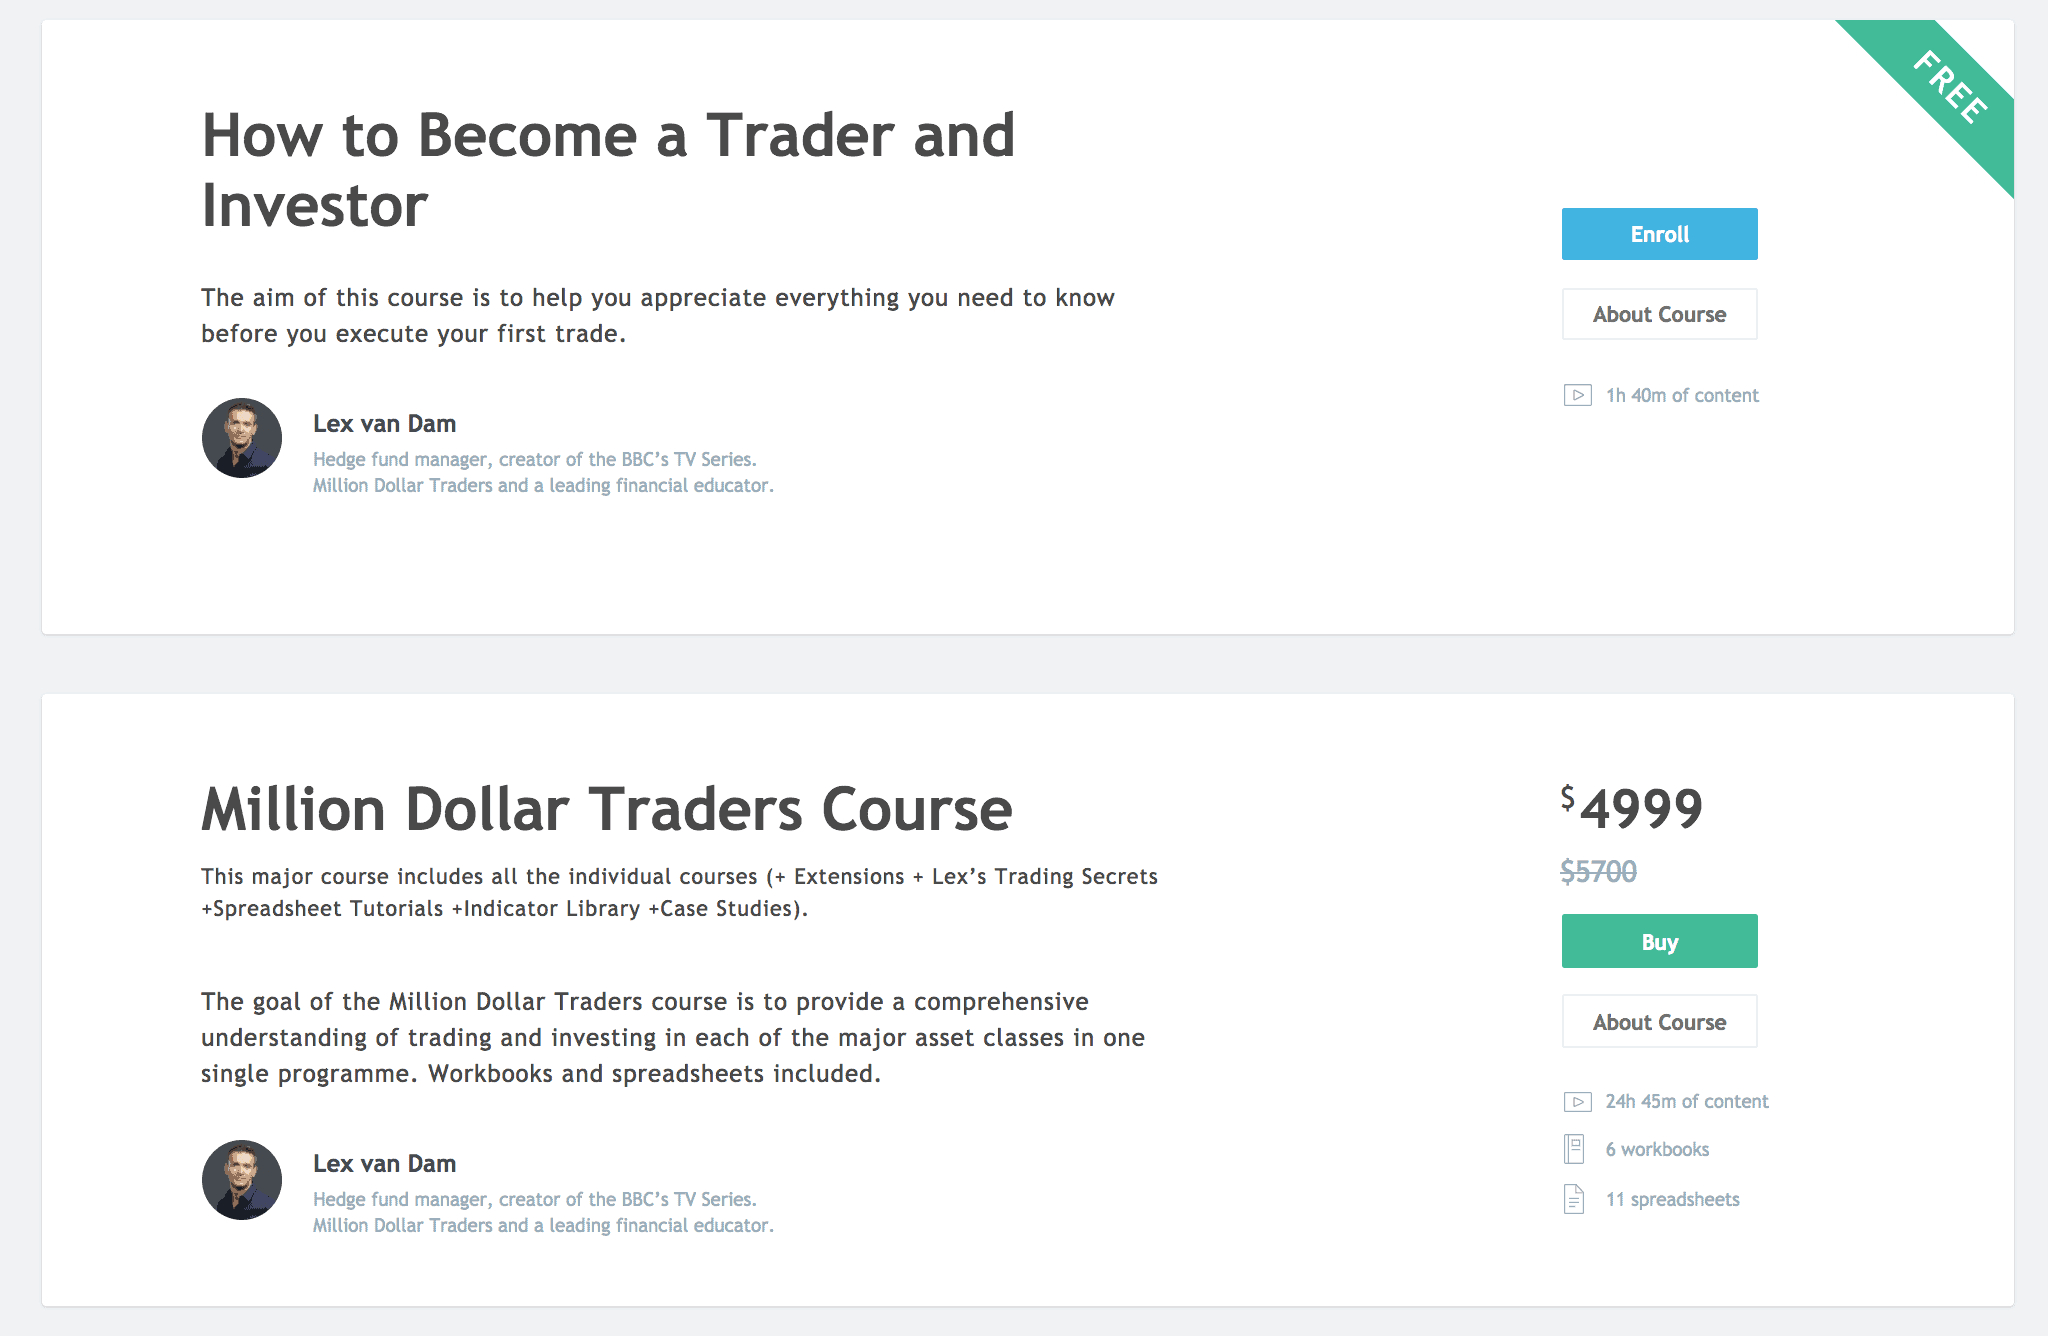 TradingView Review - Are The Pro Plans From This Service